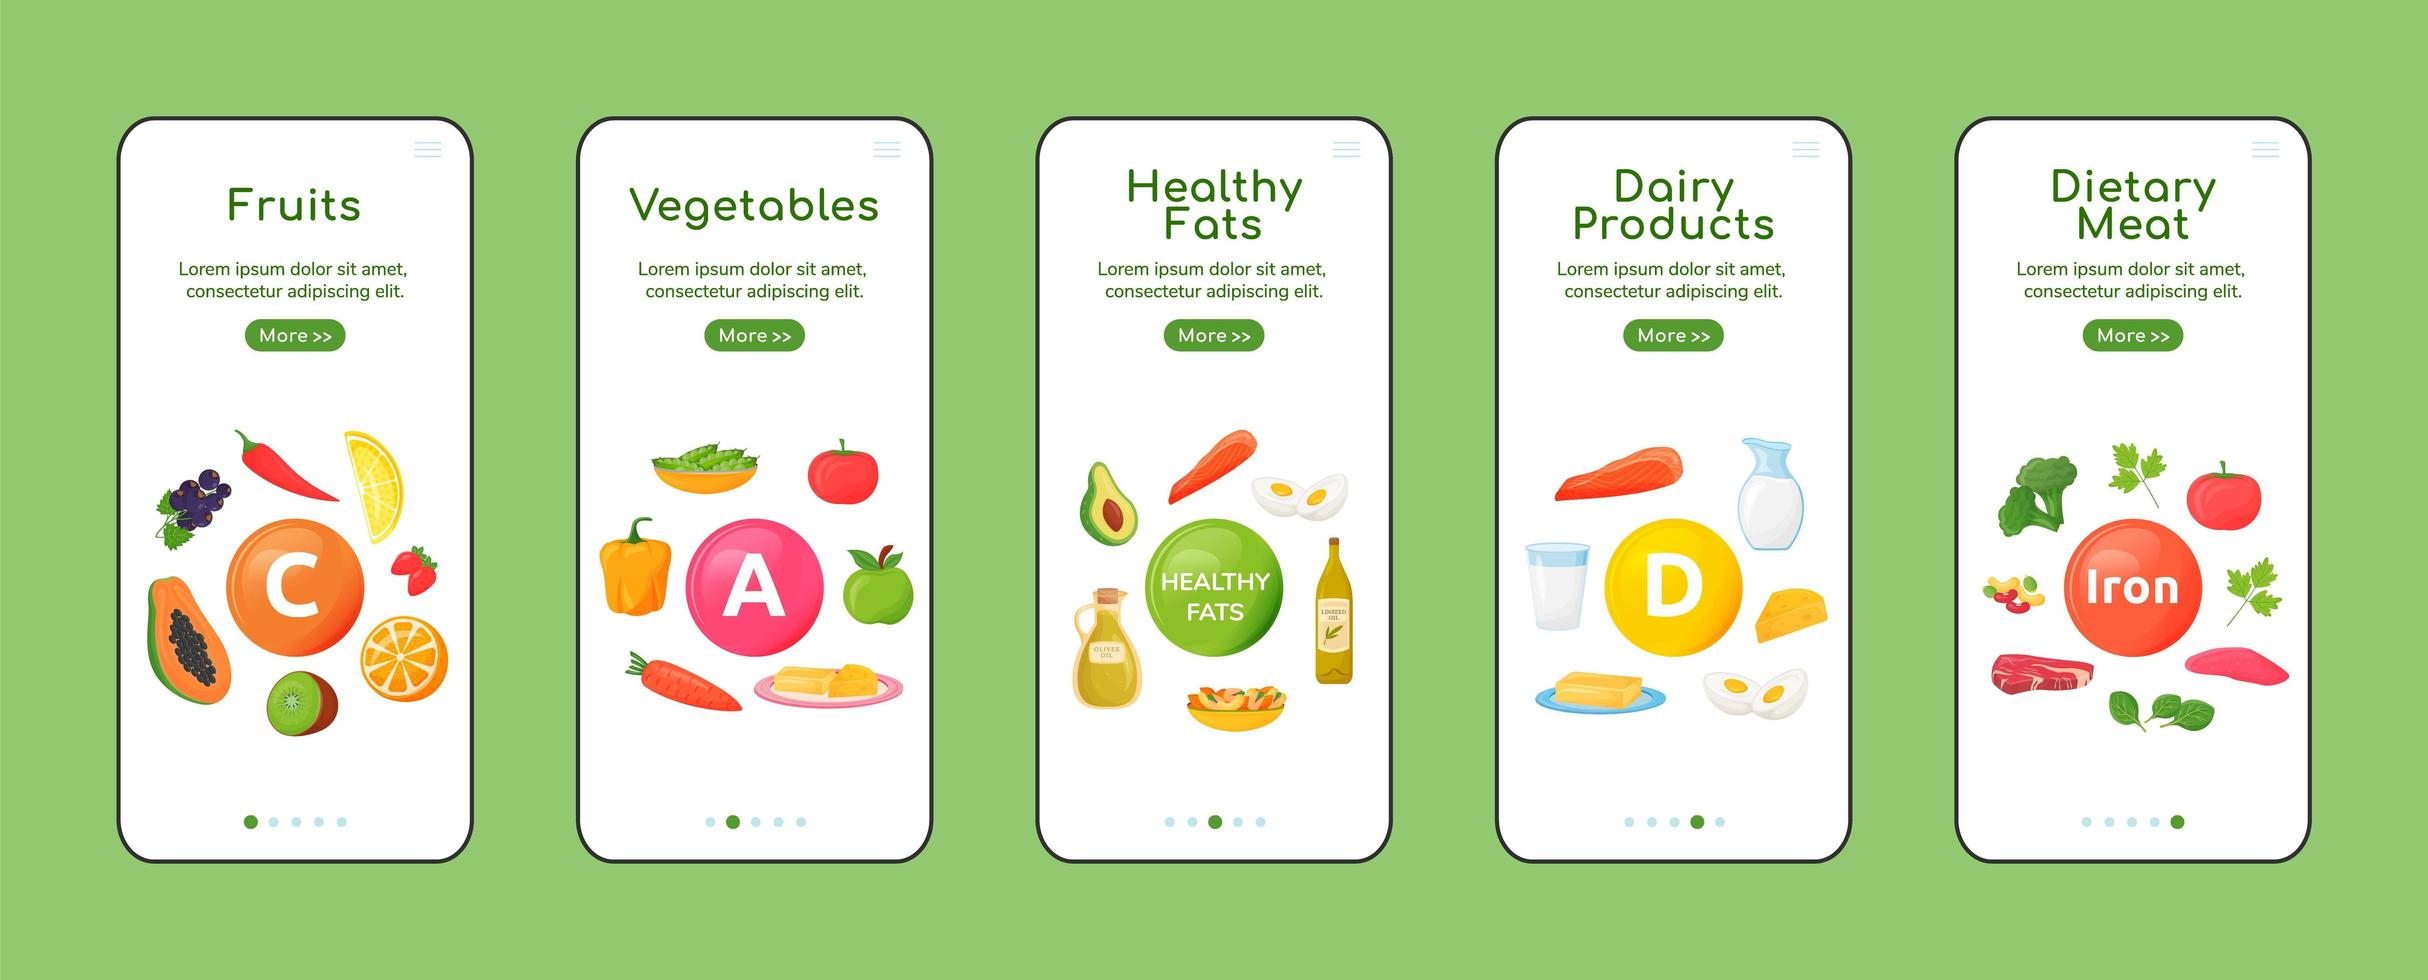 Vitamins and minerals onboarding mobile app screens vector